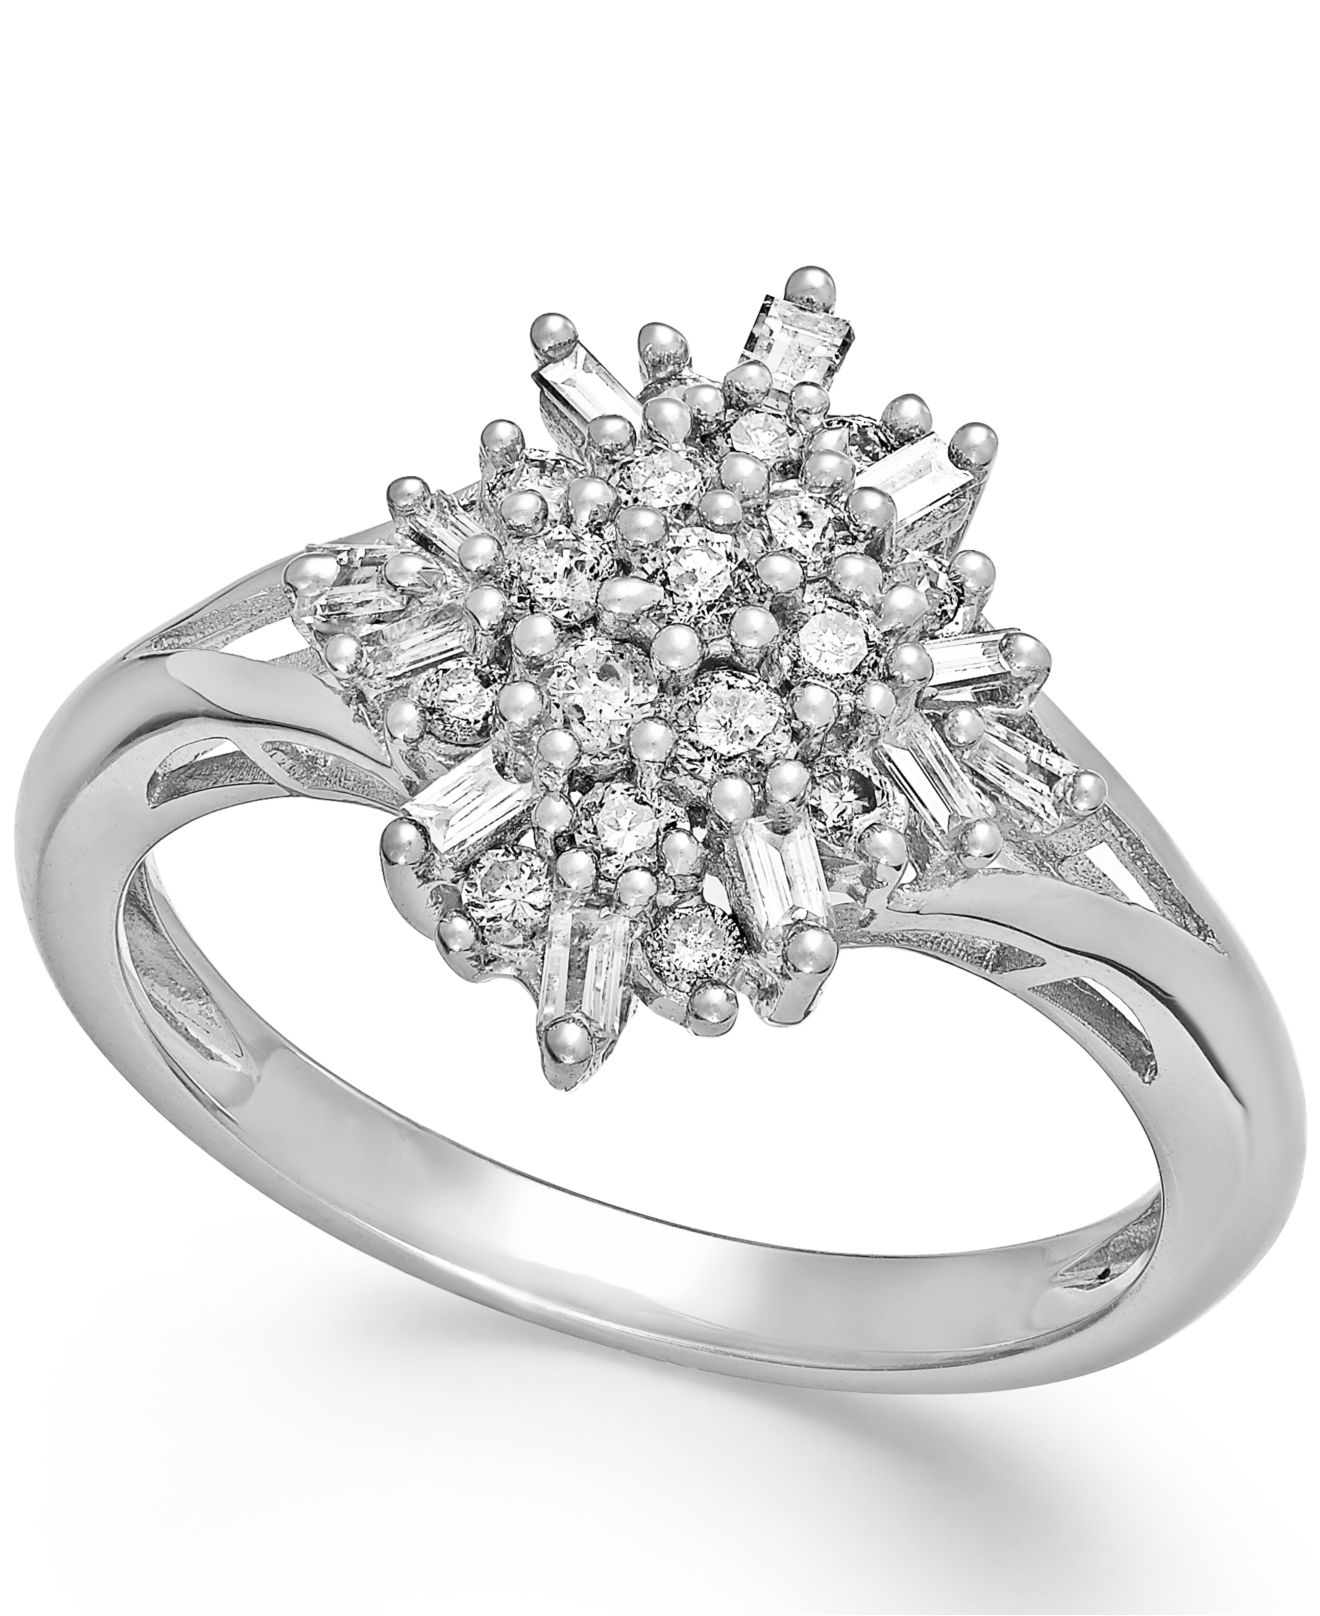 Macy s Diamond Flower Cluster Ring In Sterling Silver 1 2 Ct T w in S